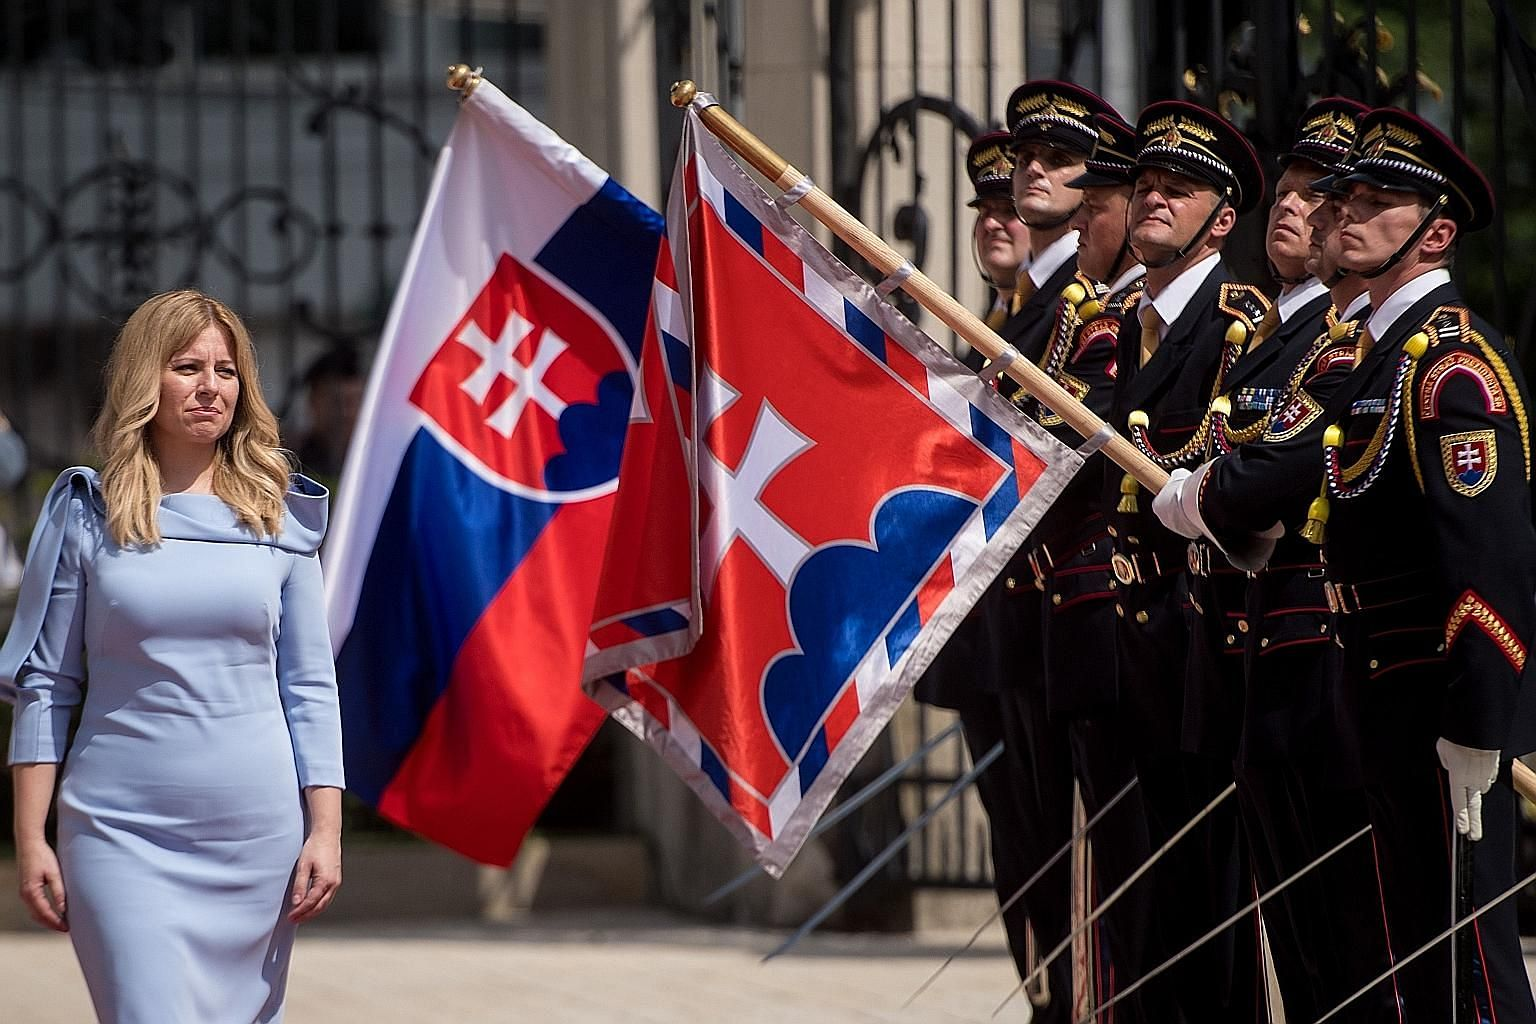 Slovakia's new President Zuzana Caputova reviewing a guard of honour as part of her inauguration in Bratislava last month. Ms Caputova's electoral victory is seen as part of a growing rejection of populism across Europe.